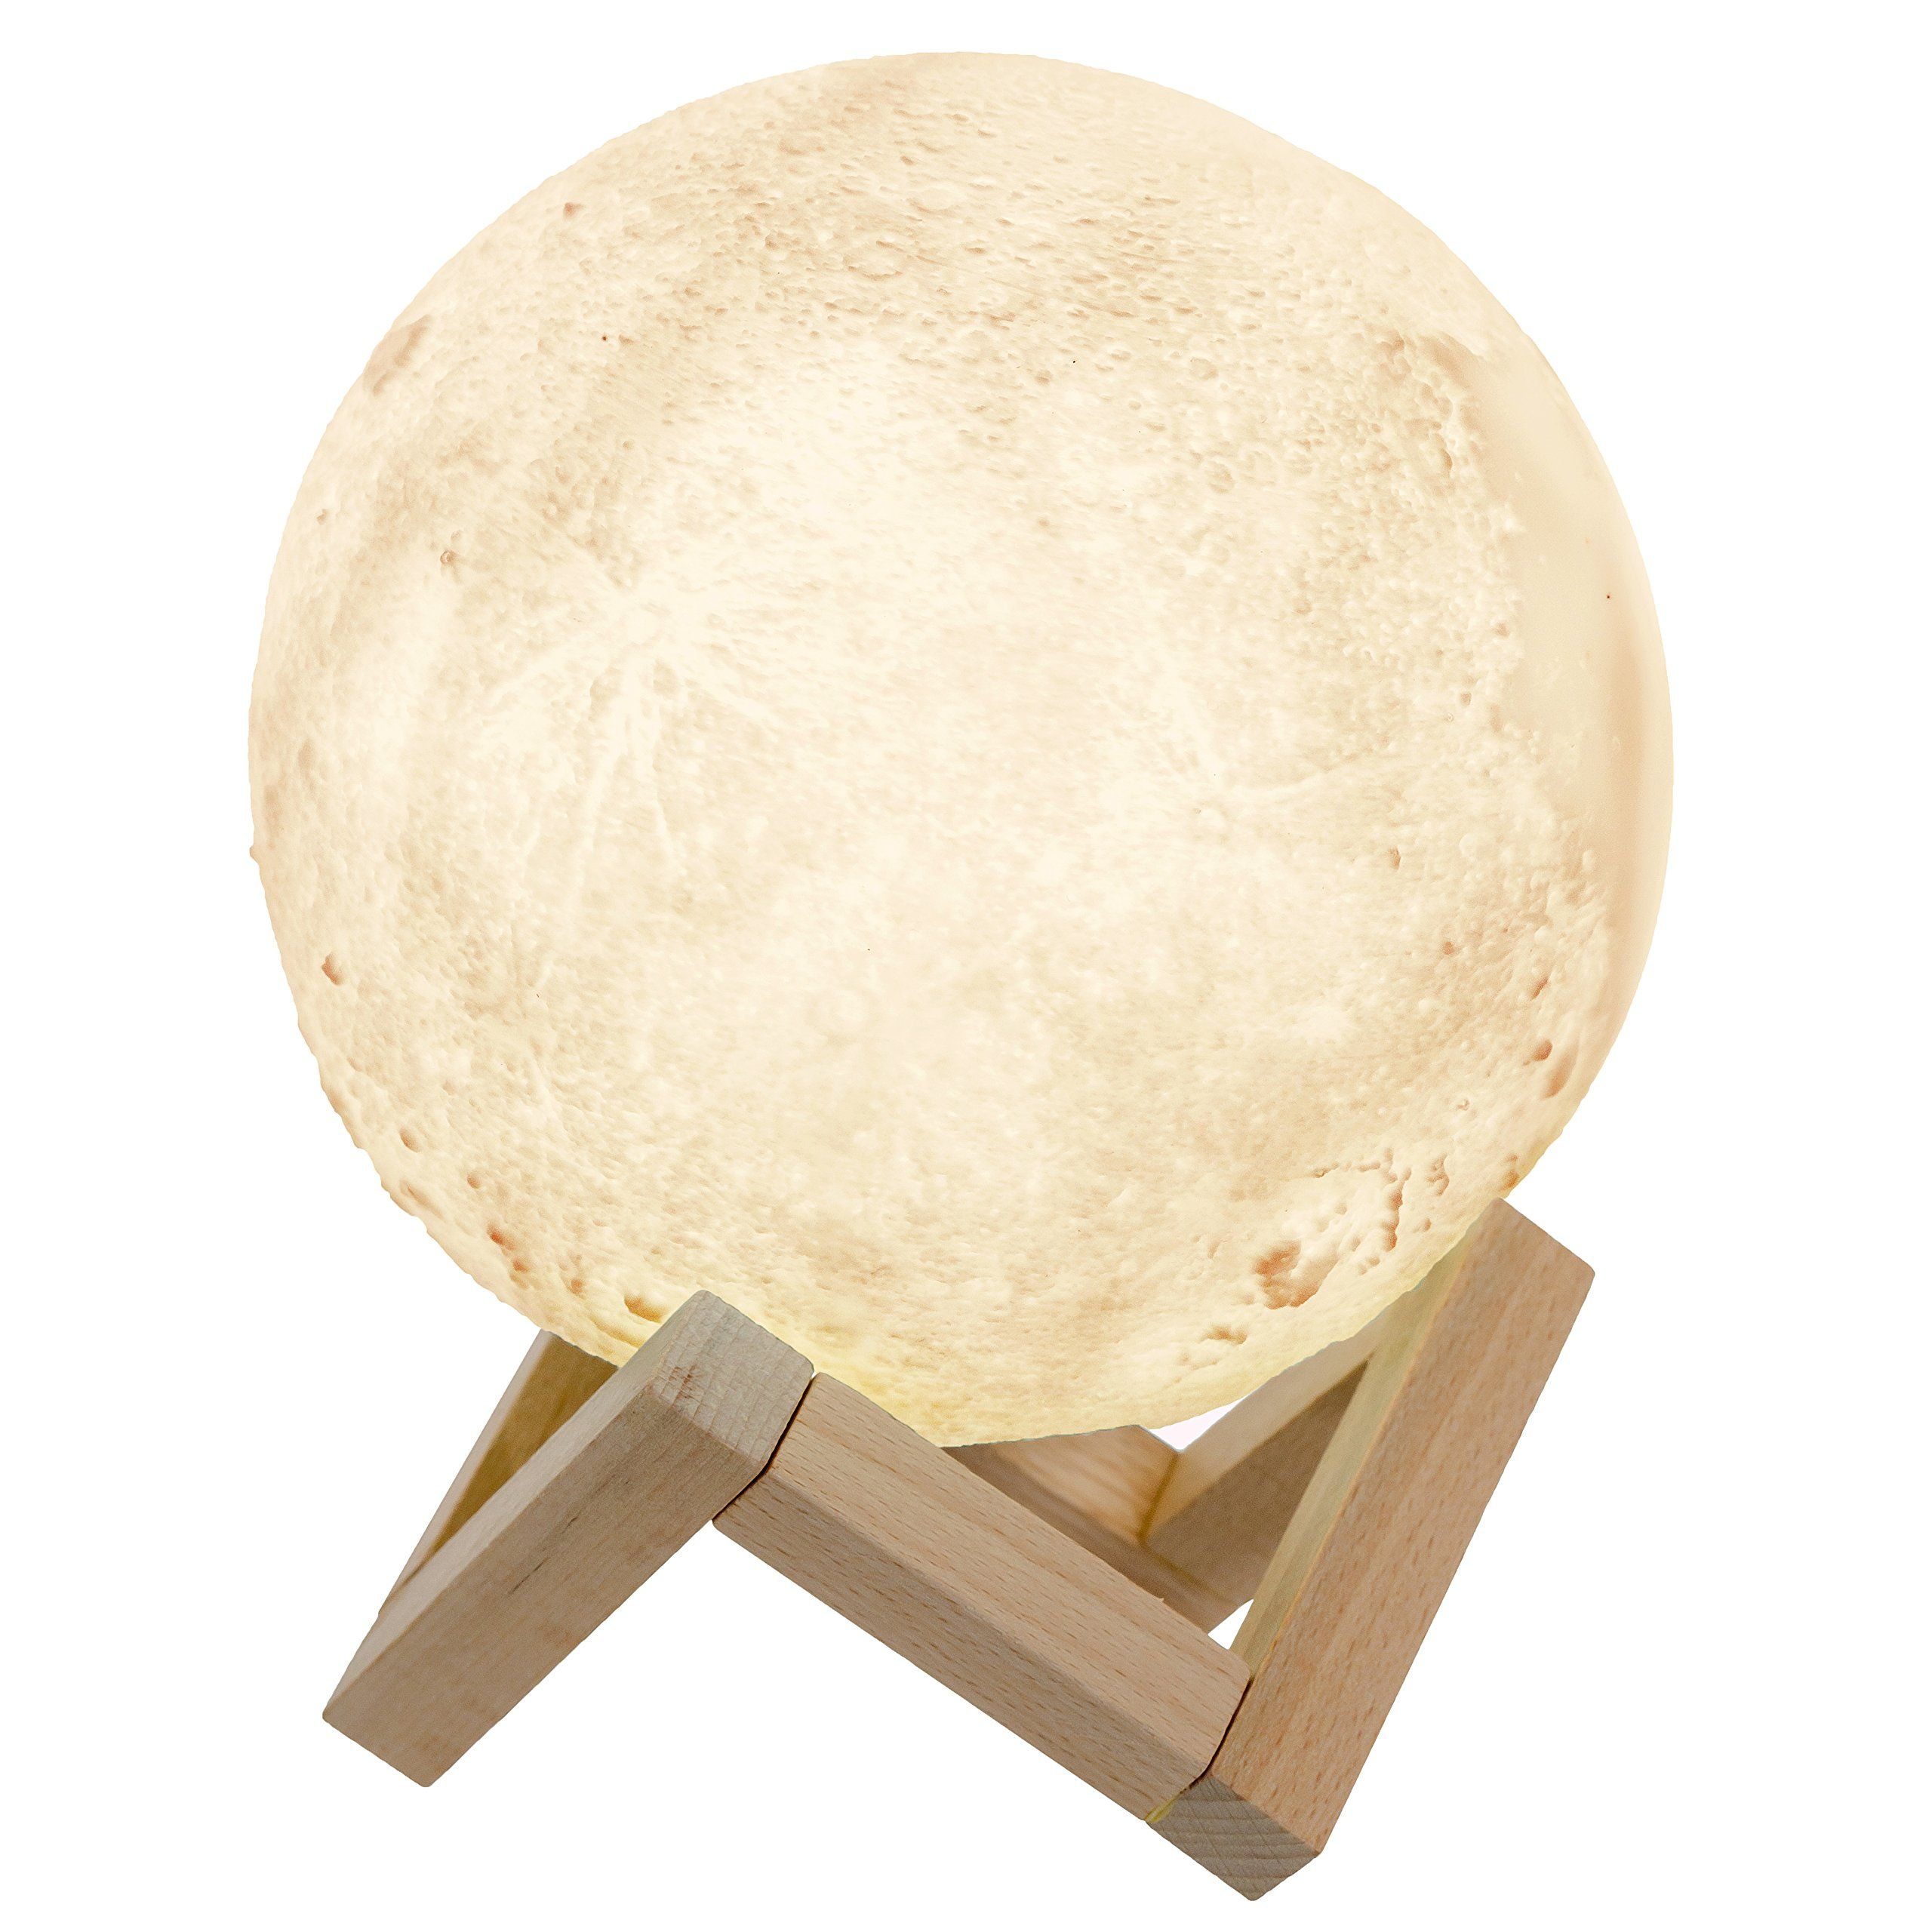 [Ag 3D] Big Moon Lamp Night Light With Stand 59In